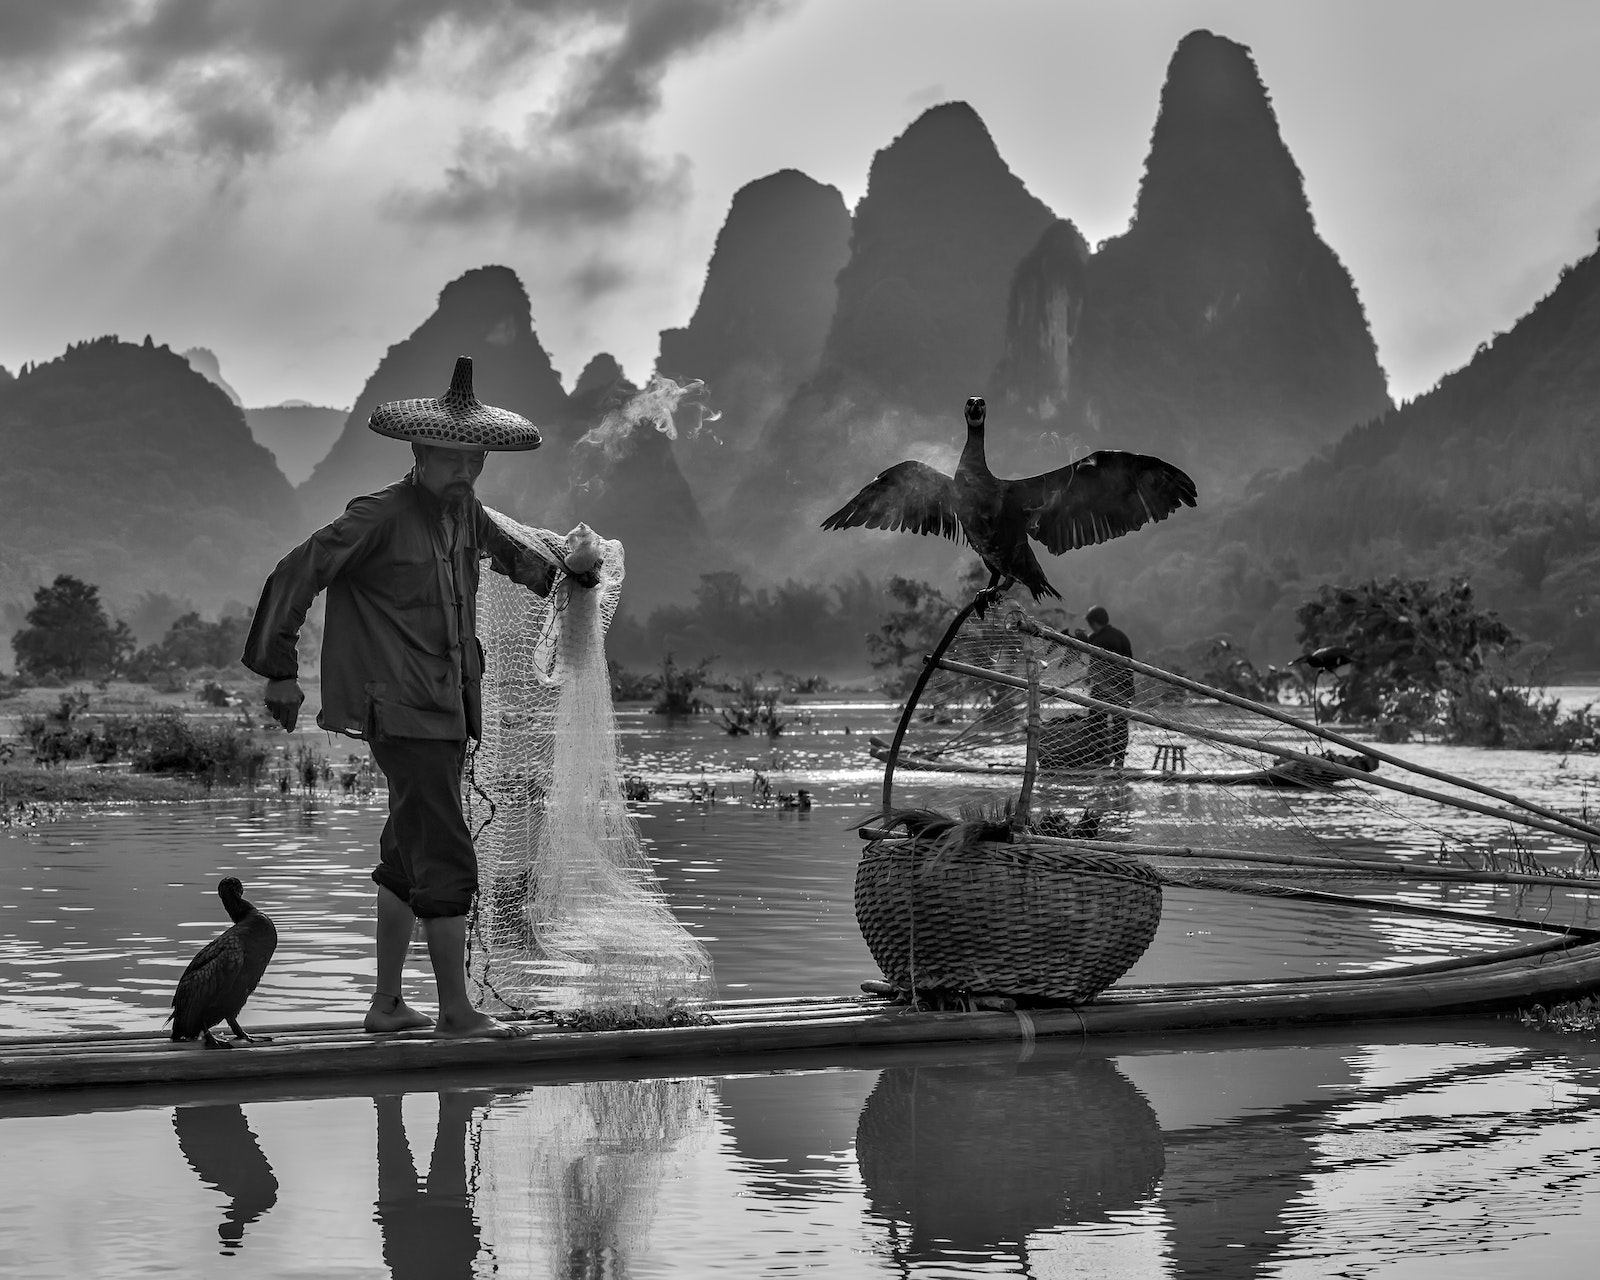 Portrait of a Fisherman - The cormorant fishermen of the Li River offer a glimpse into days gone by. The amazing karst landscape offers the spectacular...